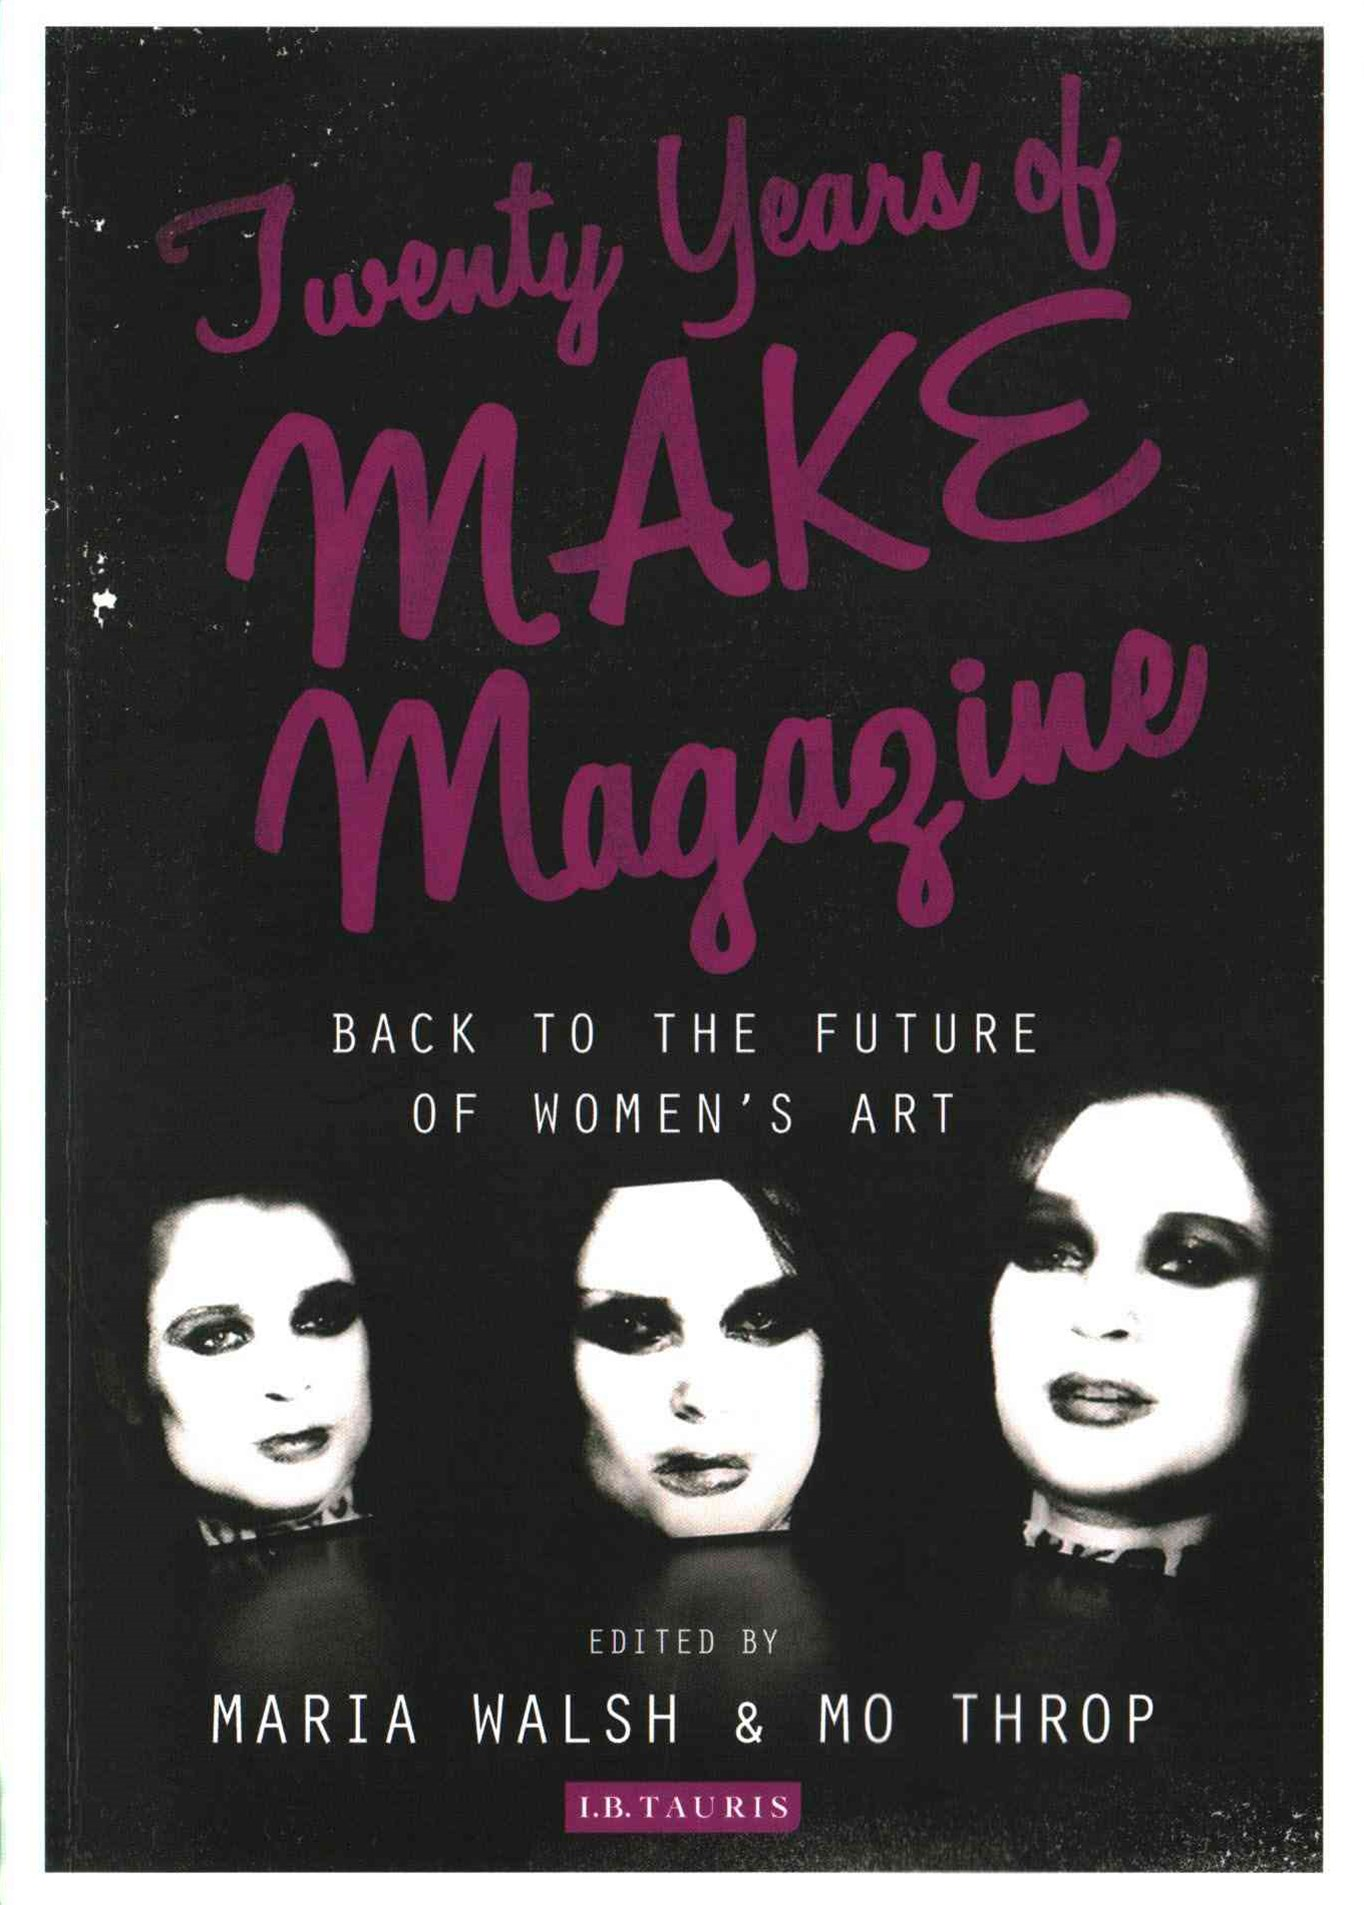 Twenty Years of MAKE Magazine